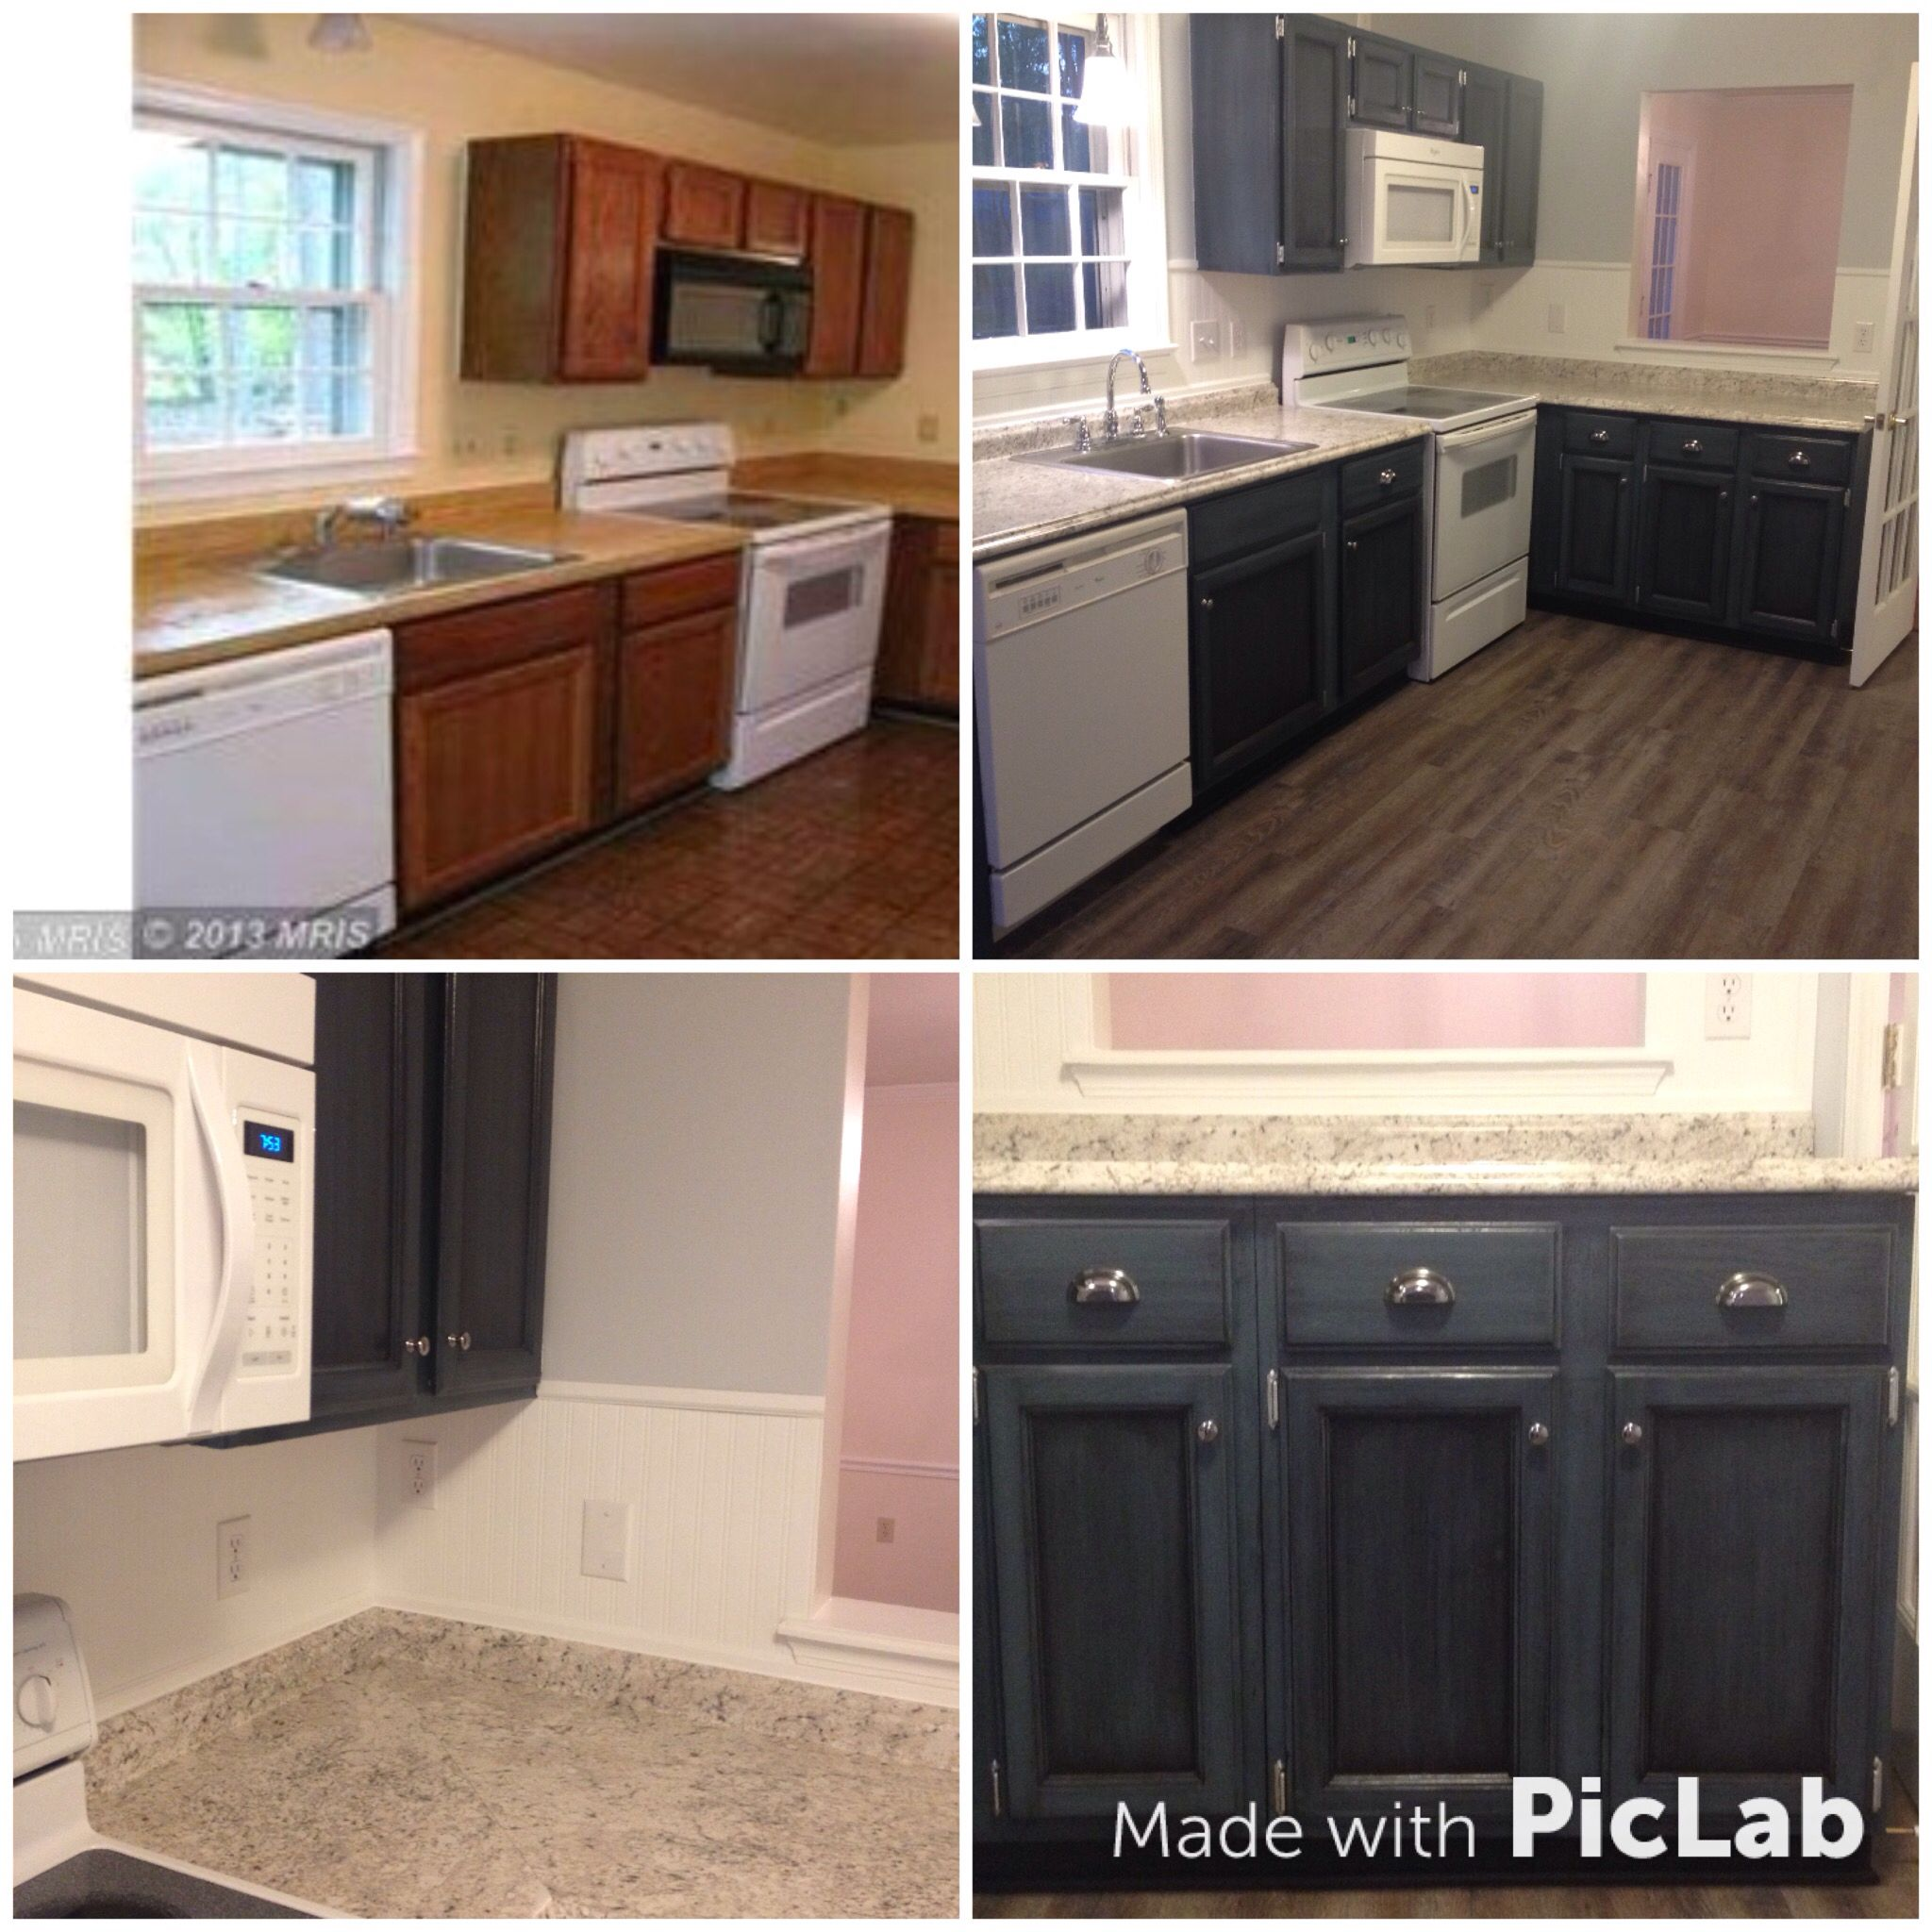 Before And After Of The Low Budget Update To Our Rental Property Kitchen Cabinets Painted In Benjamin Moo Rental House Kitchen Rental Kitchen Laminate Kitchen